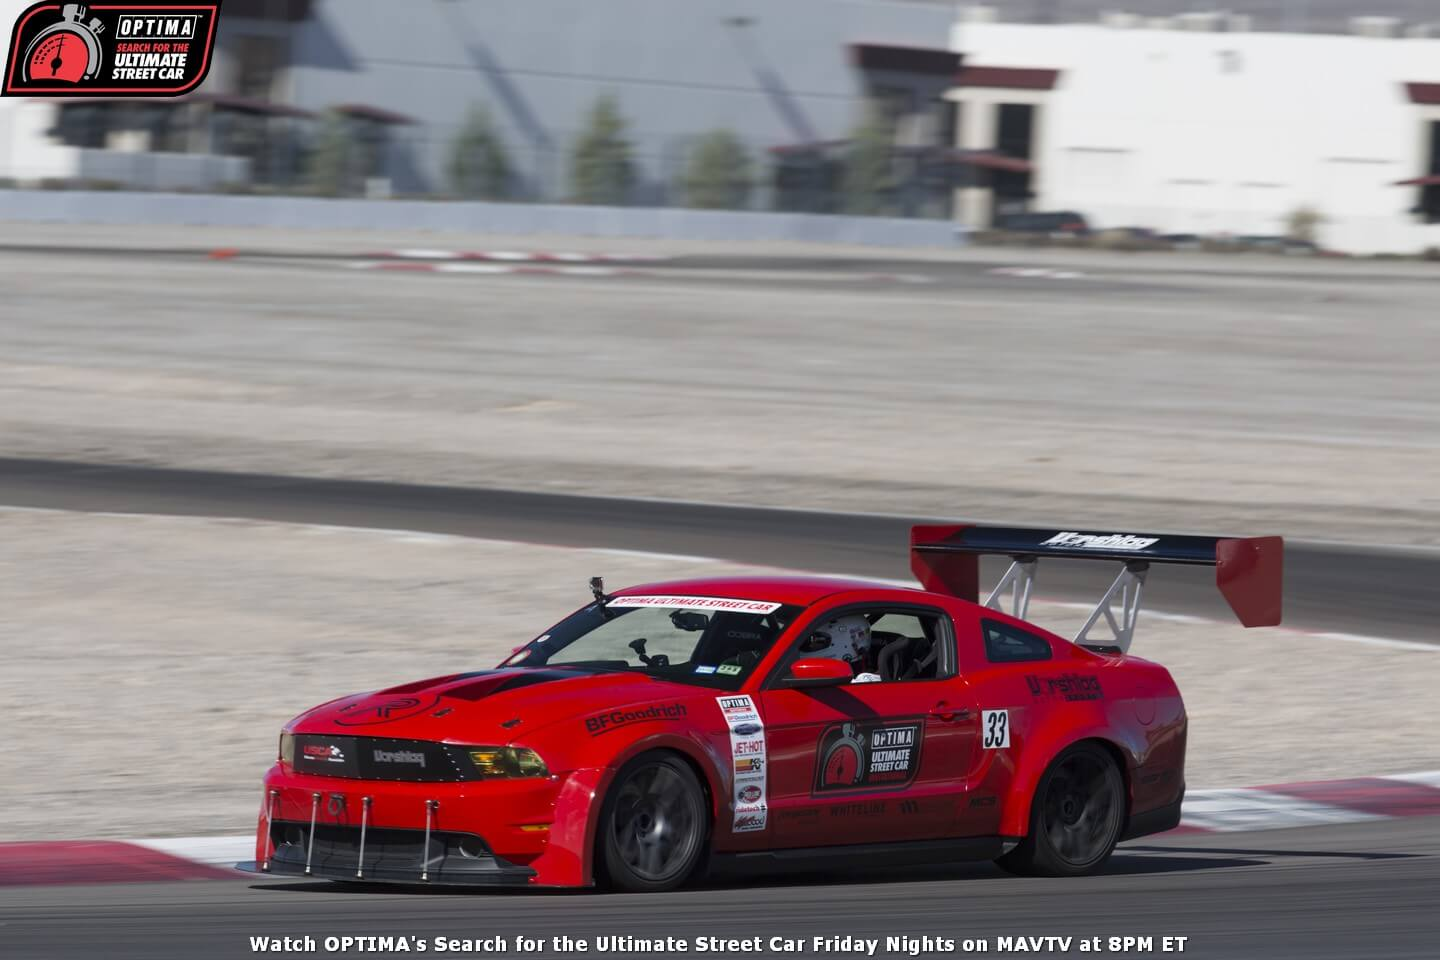 Terry-Fair-2011-Ford-Mustang-GT-OPTIMA-Ultimate-Street-Car-Invitational-2014-BFGoodrich-Hot-Lap-Challenge_61